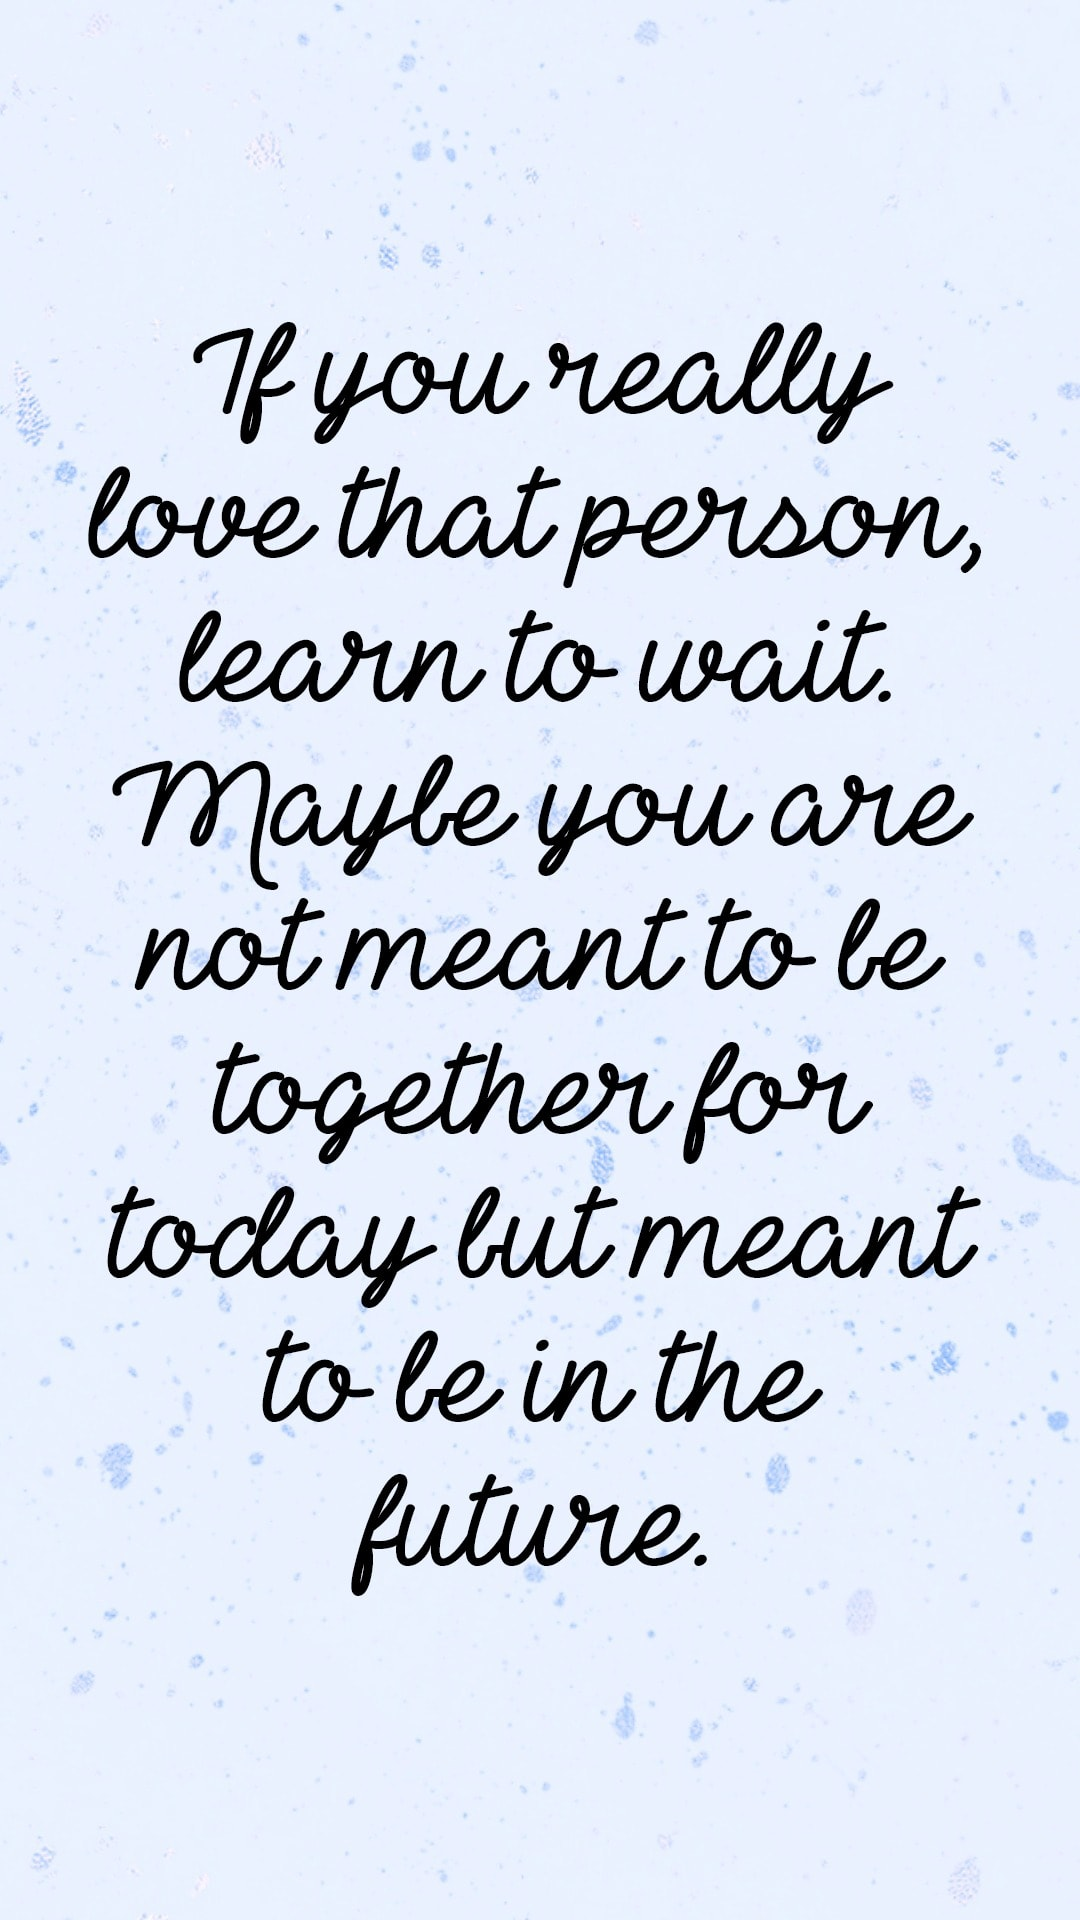 If you really love that person, learn to wait. Maybe you are not meant to be together for today, but meant to be in the future.